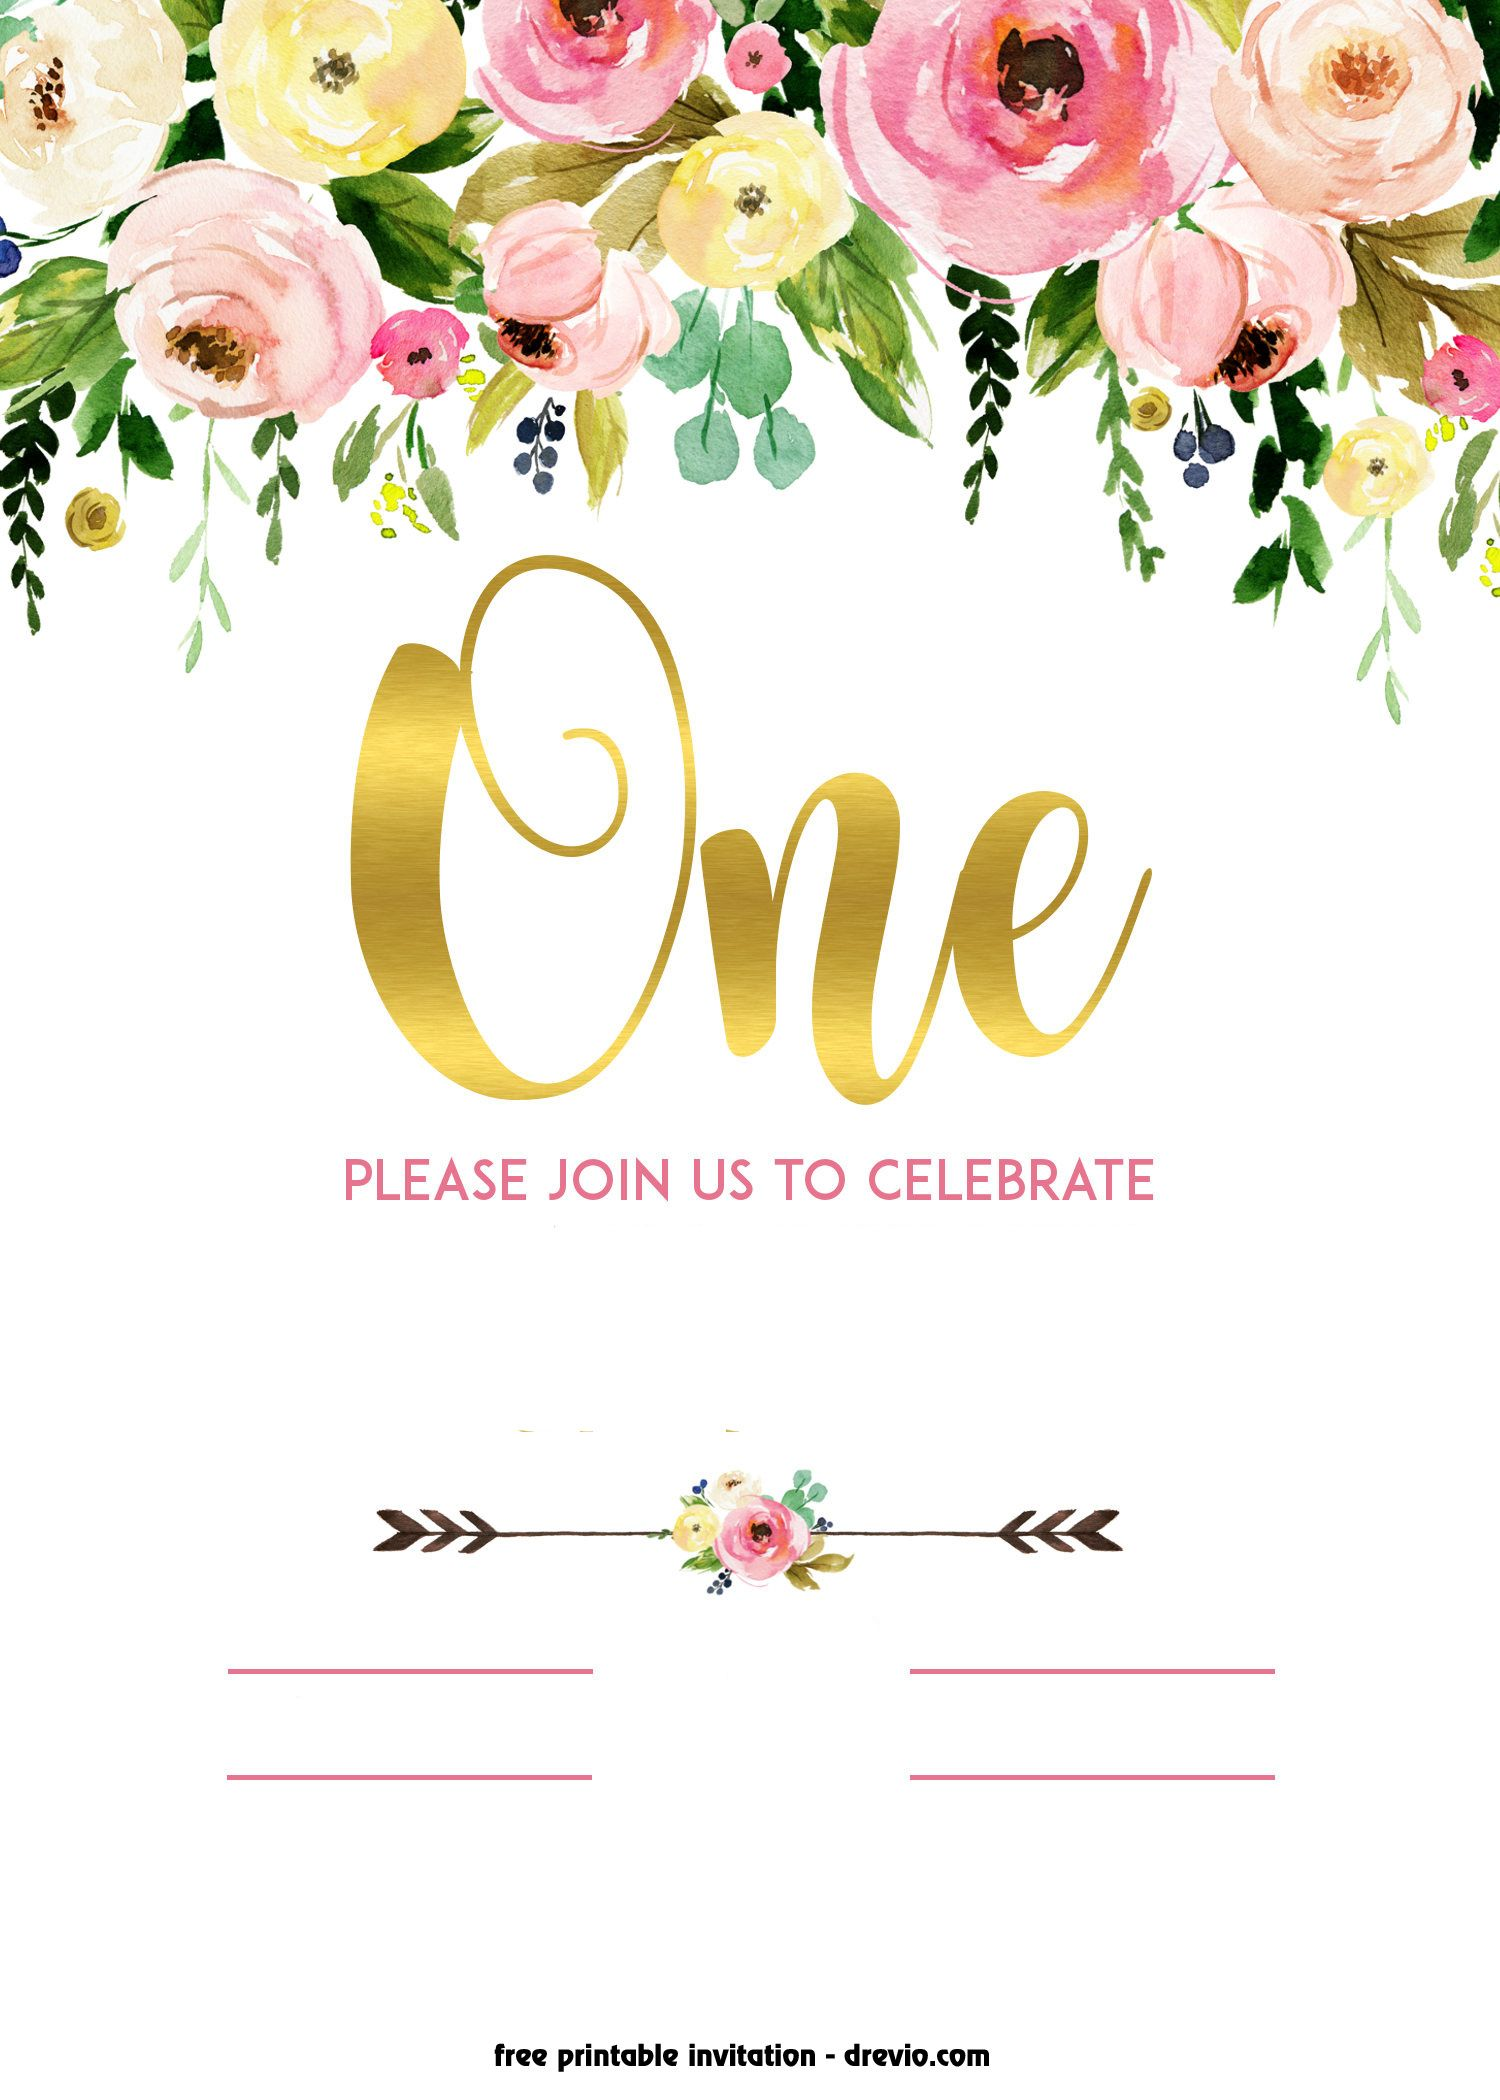 FREE Printable 1st Birthday Invitation - Vintage Style! in 2018 ...